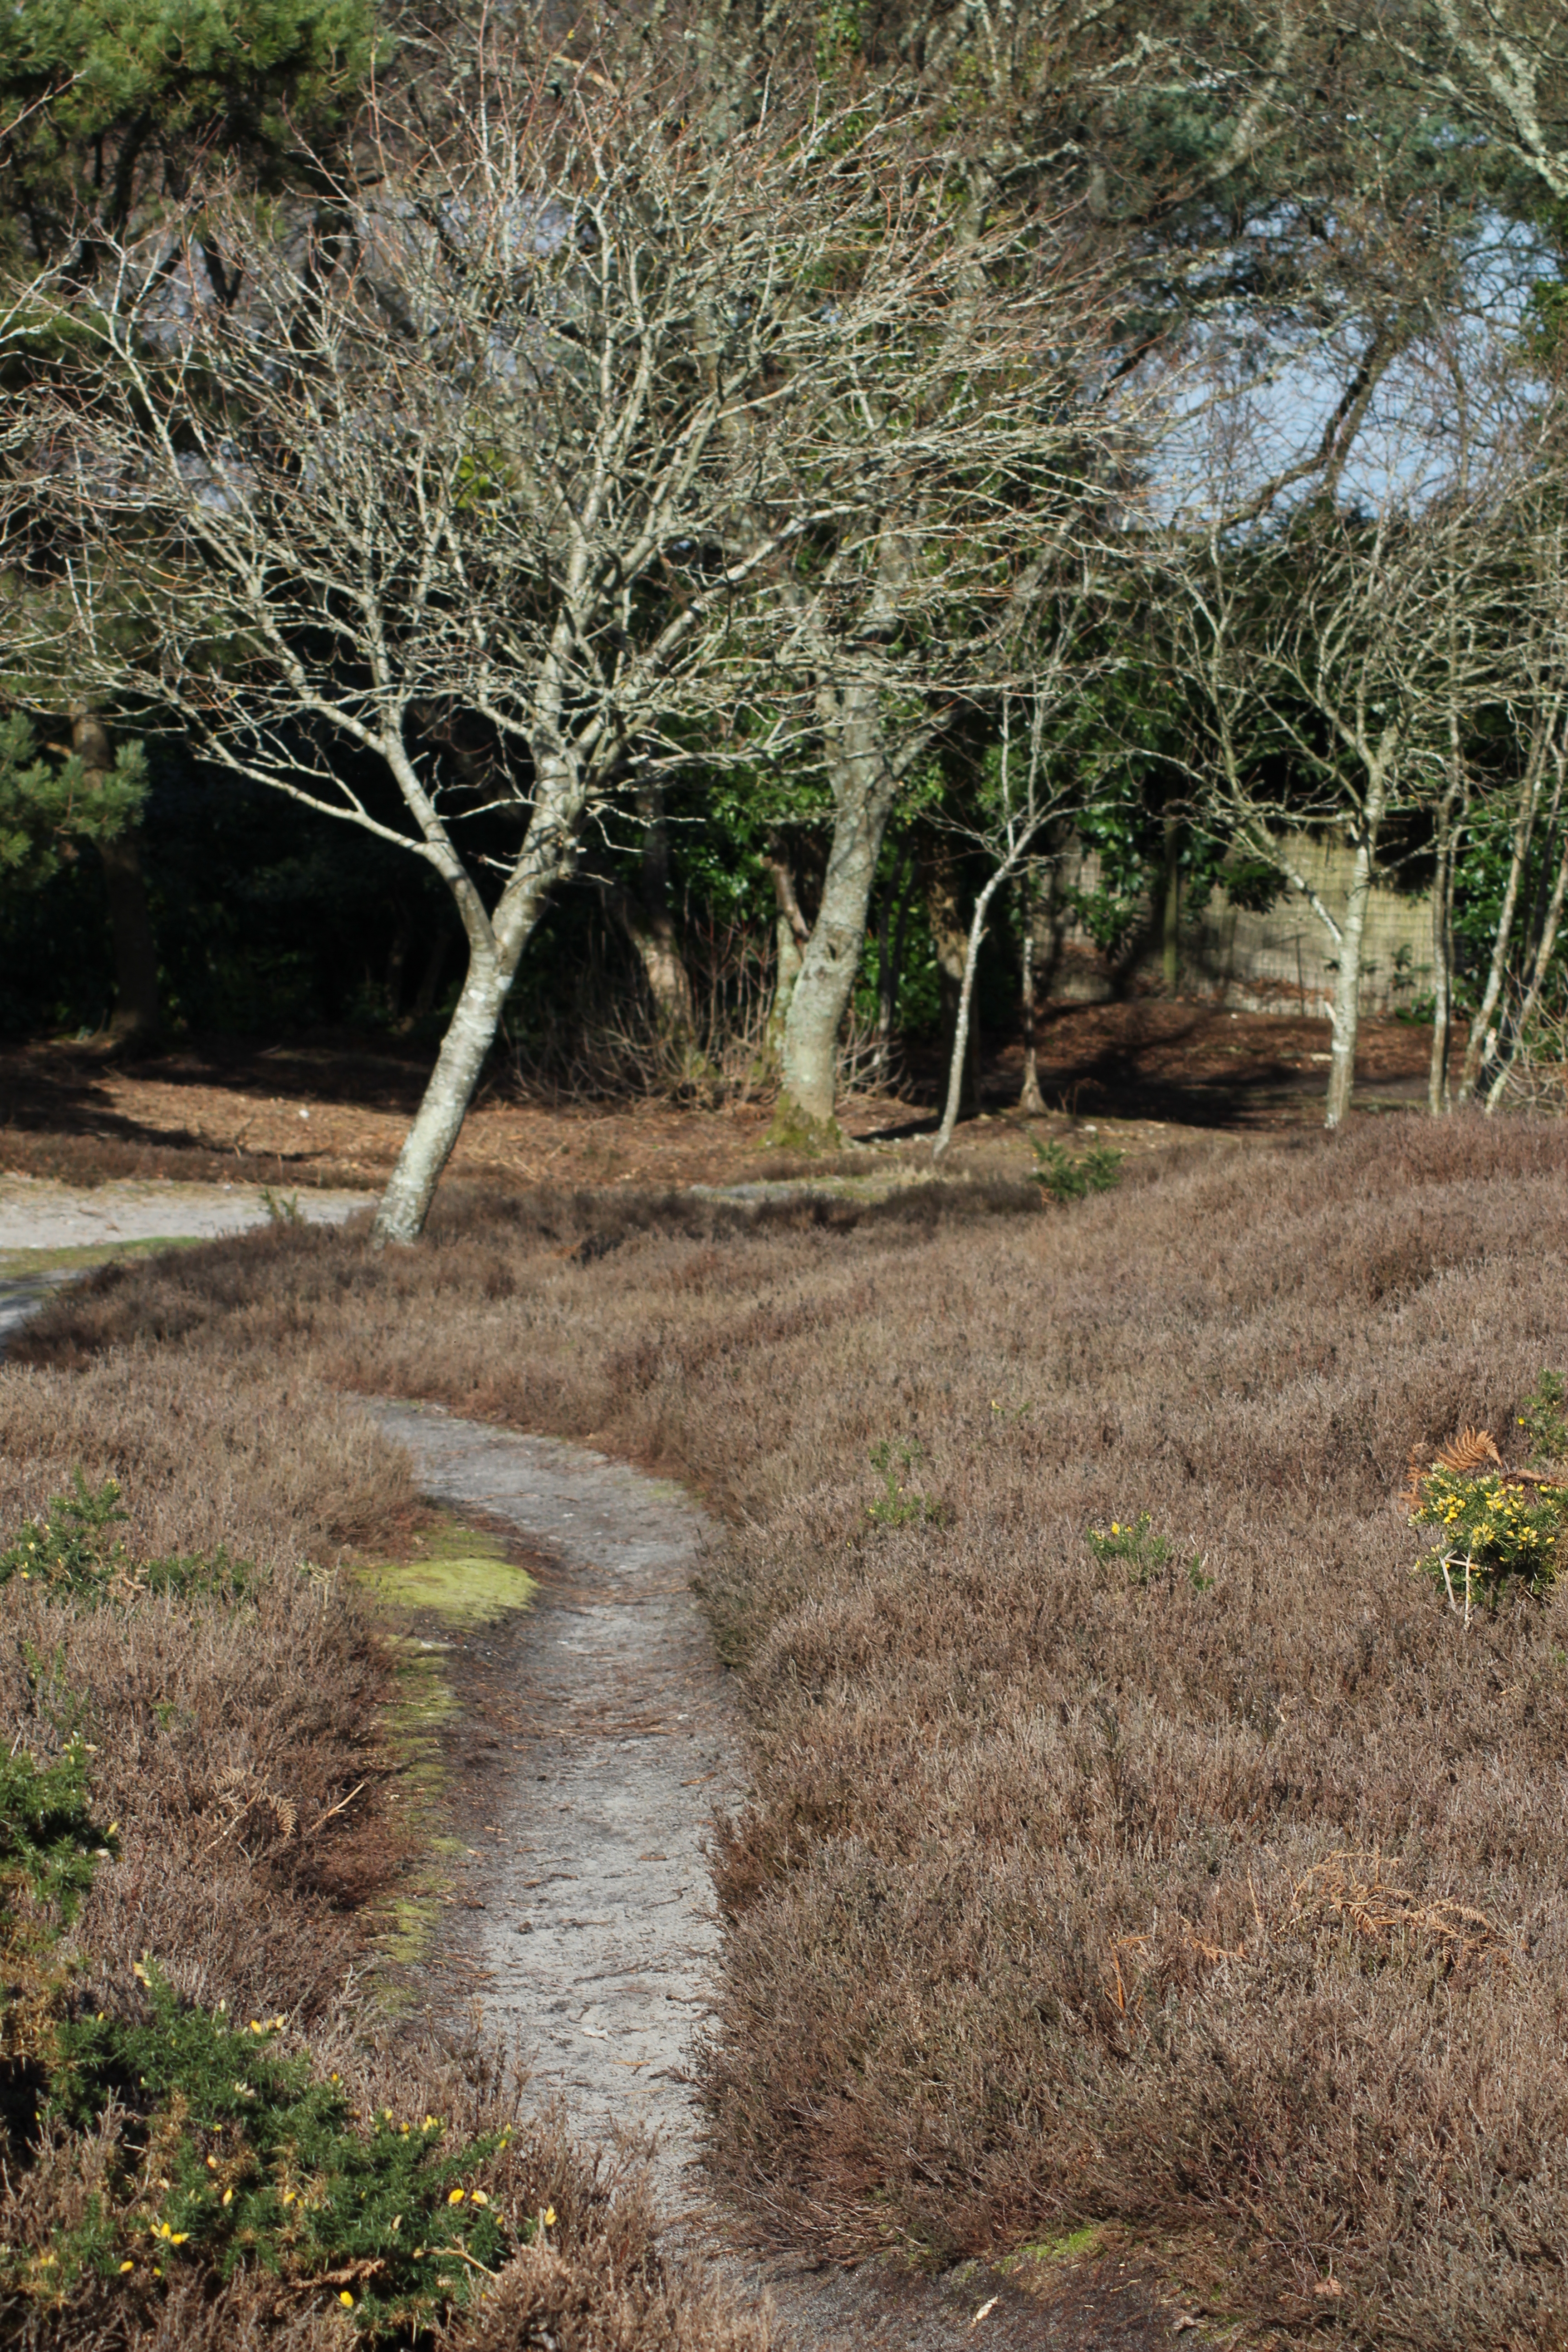 Having descending from Shipstal Hill there is a wider track which parallels the official footpath down to the shore…